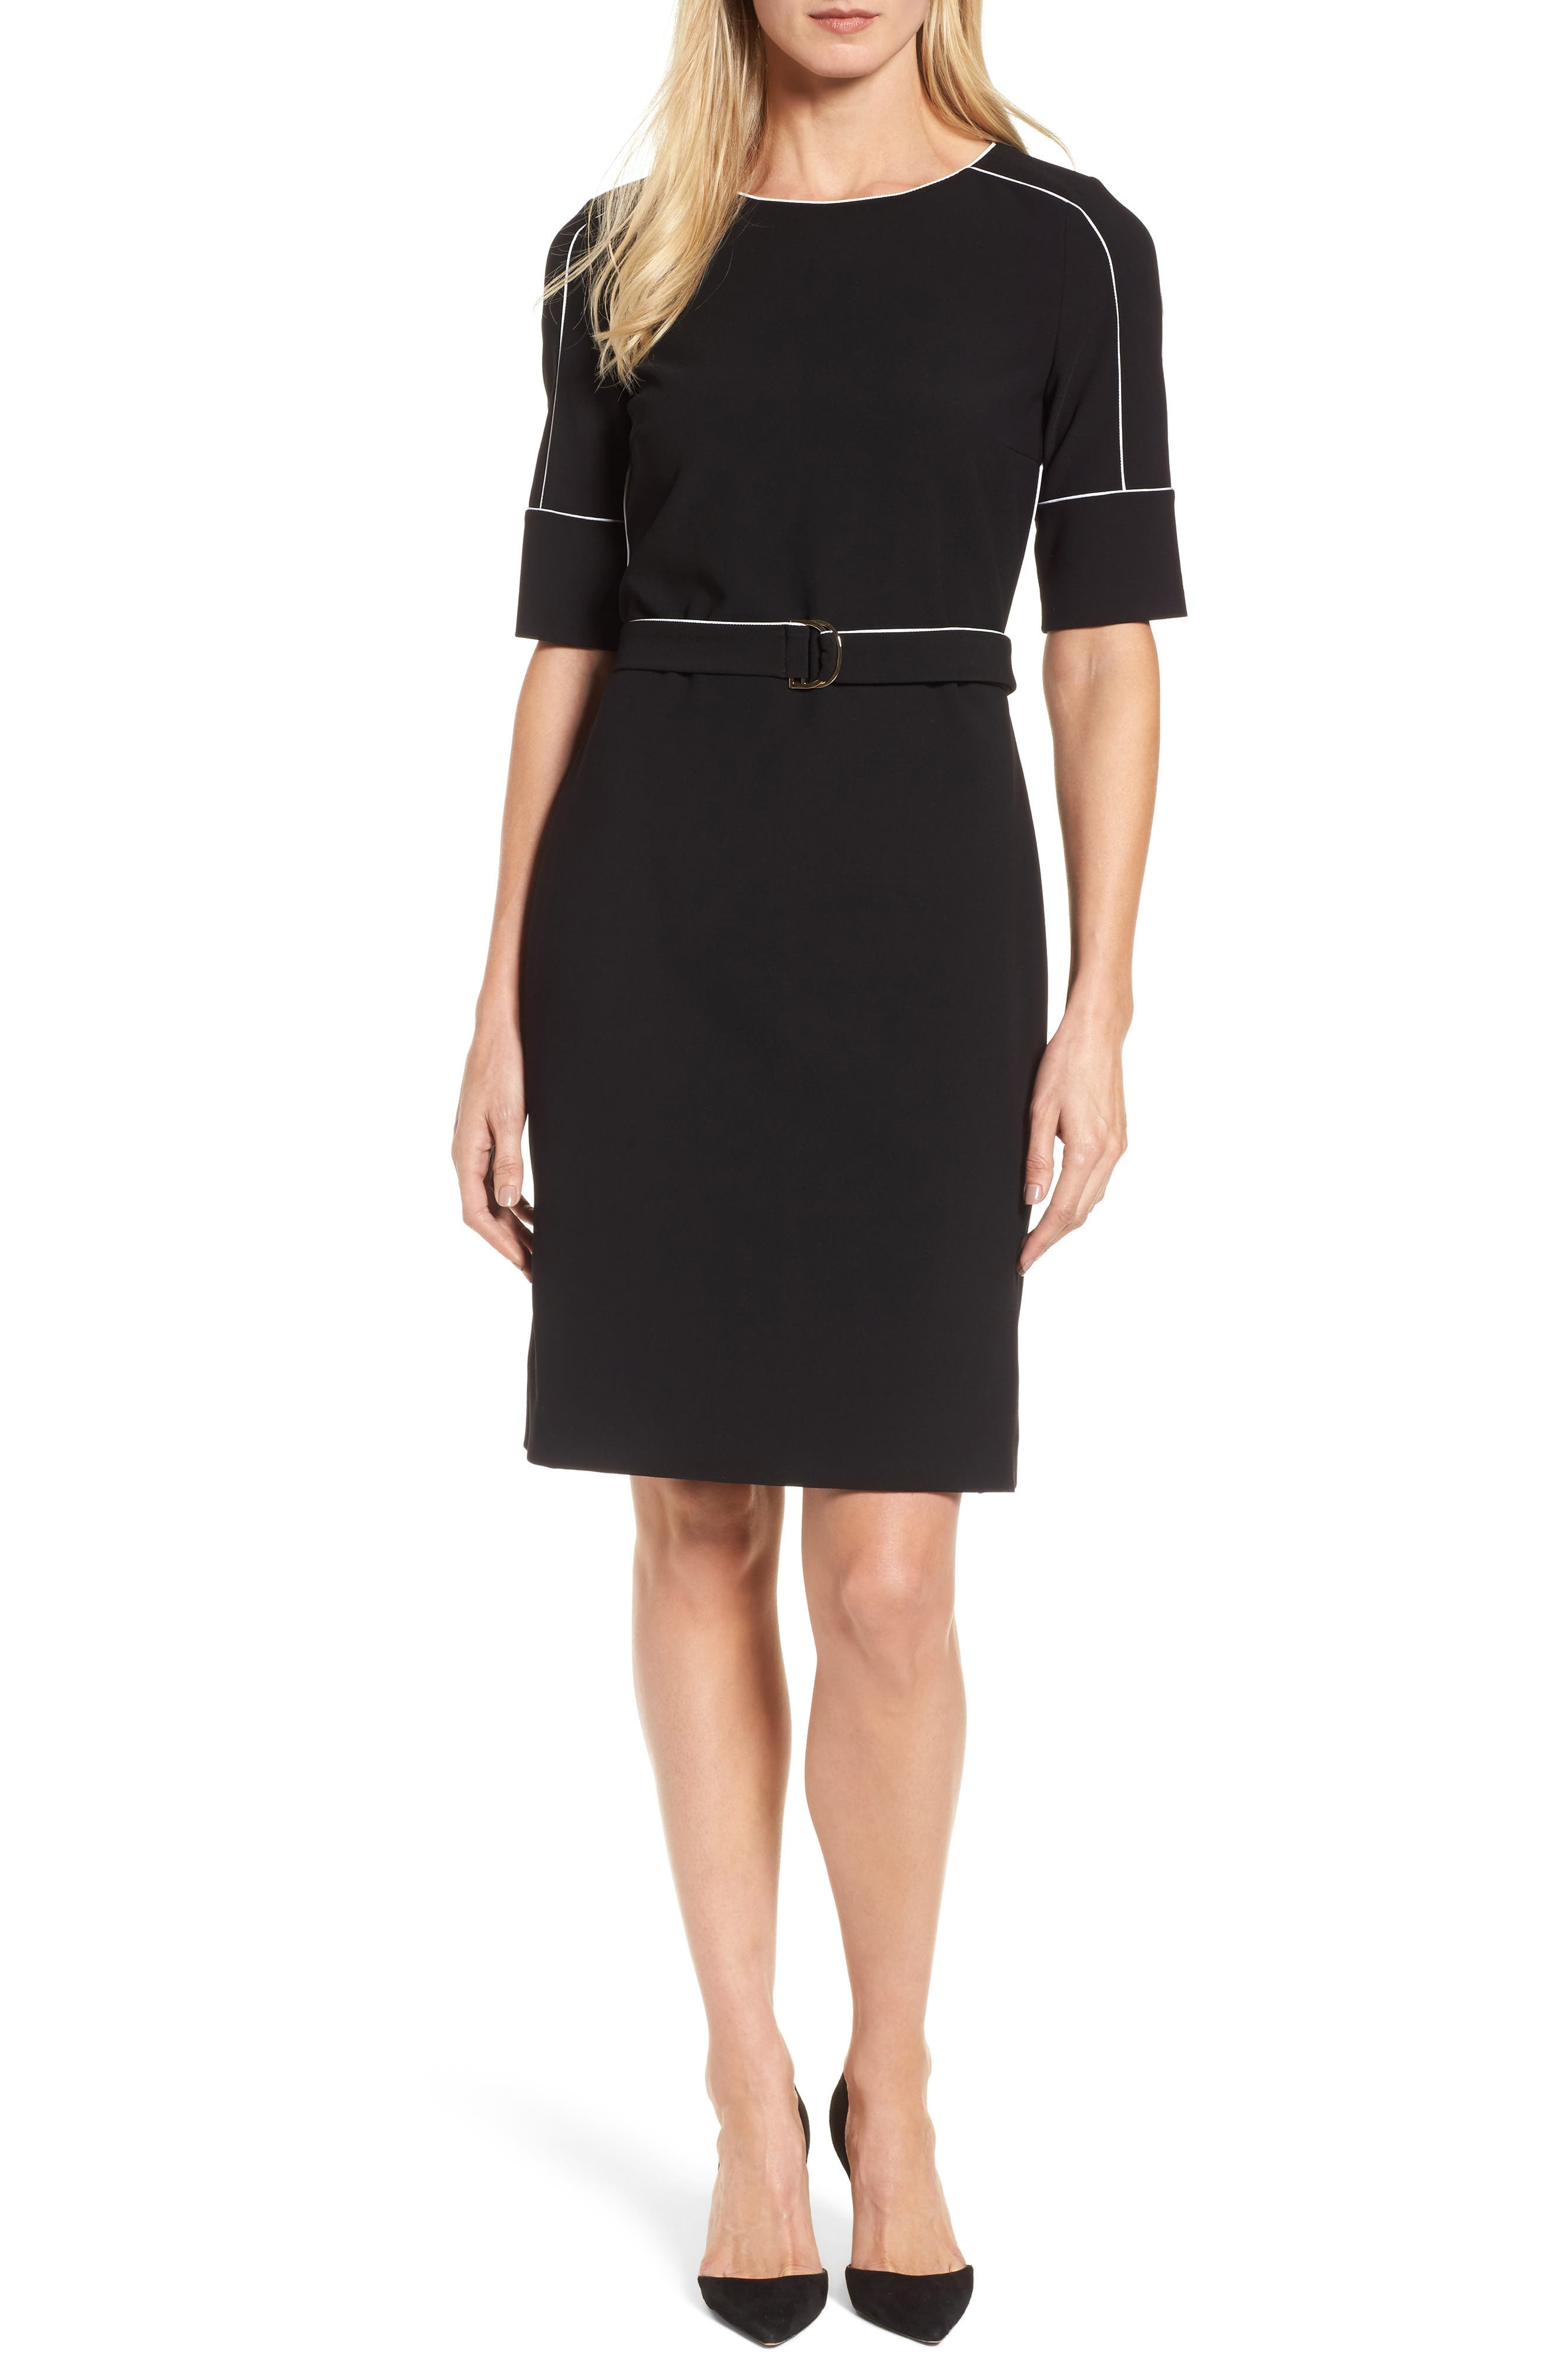 Duwimea Seamed Pencil Dress,                         Main,                         color, Black